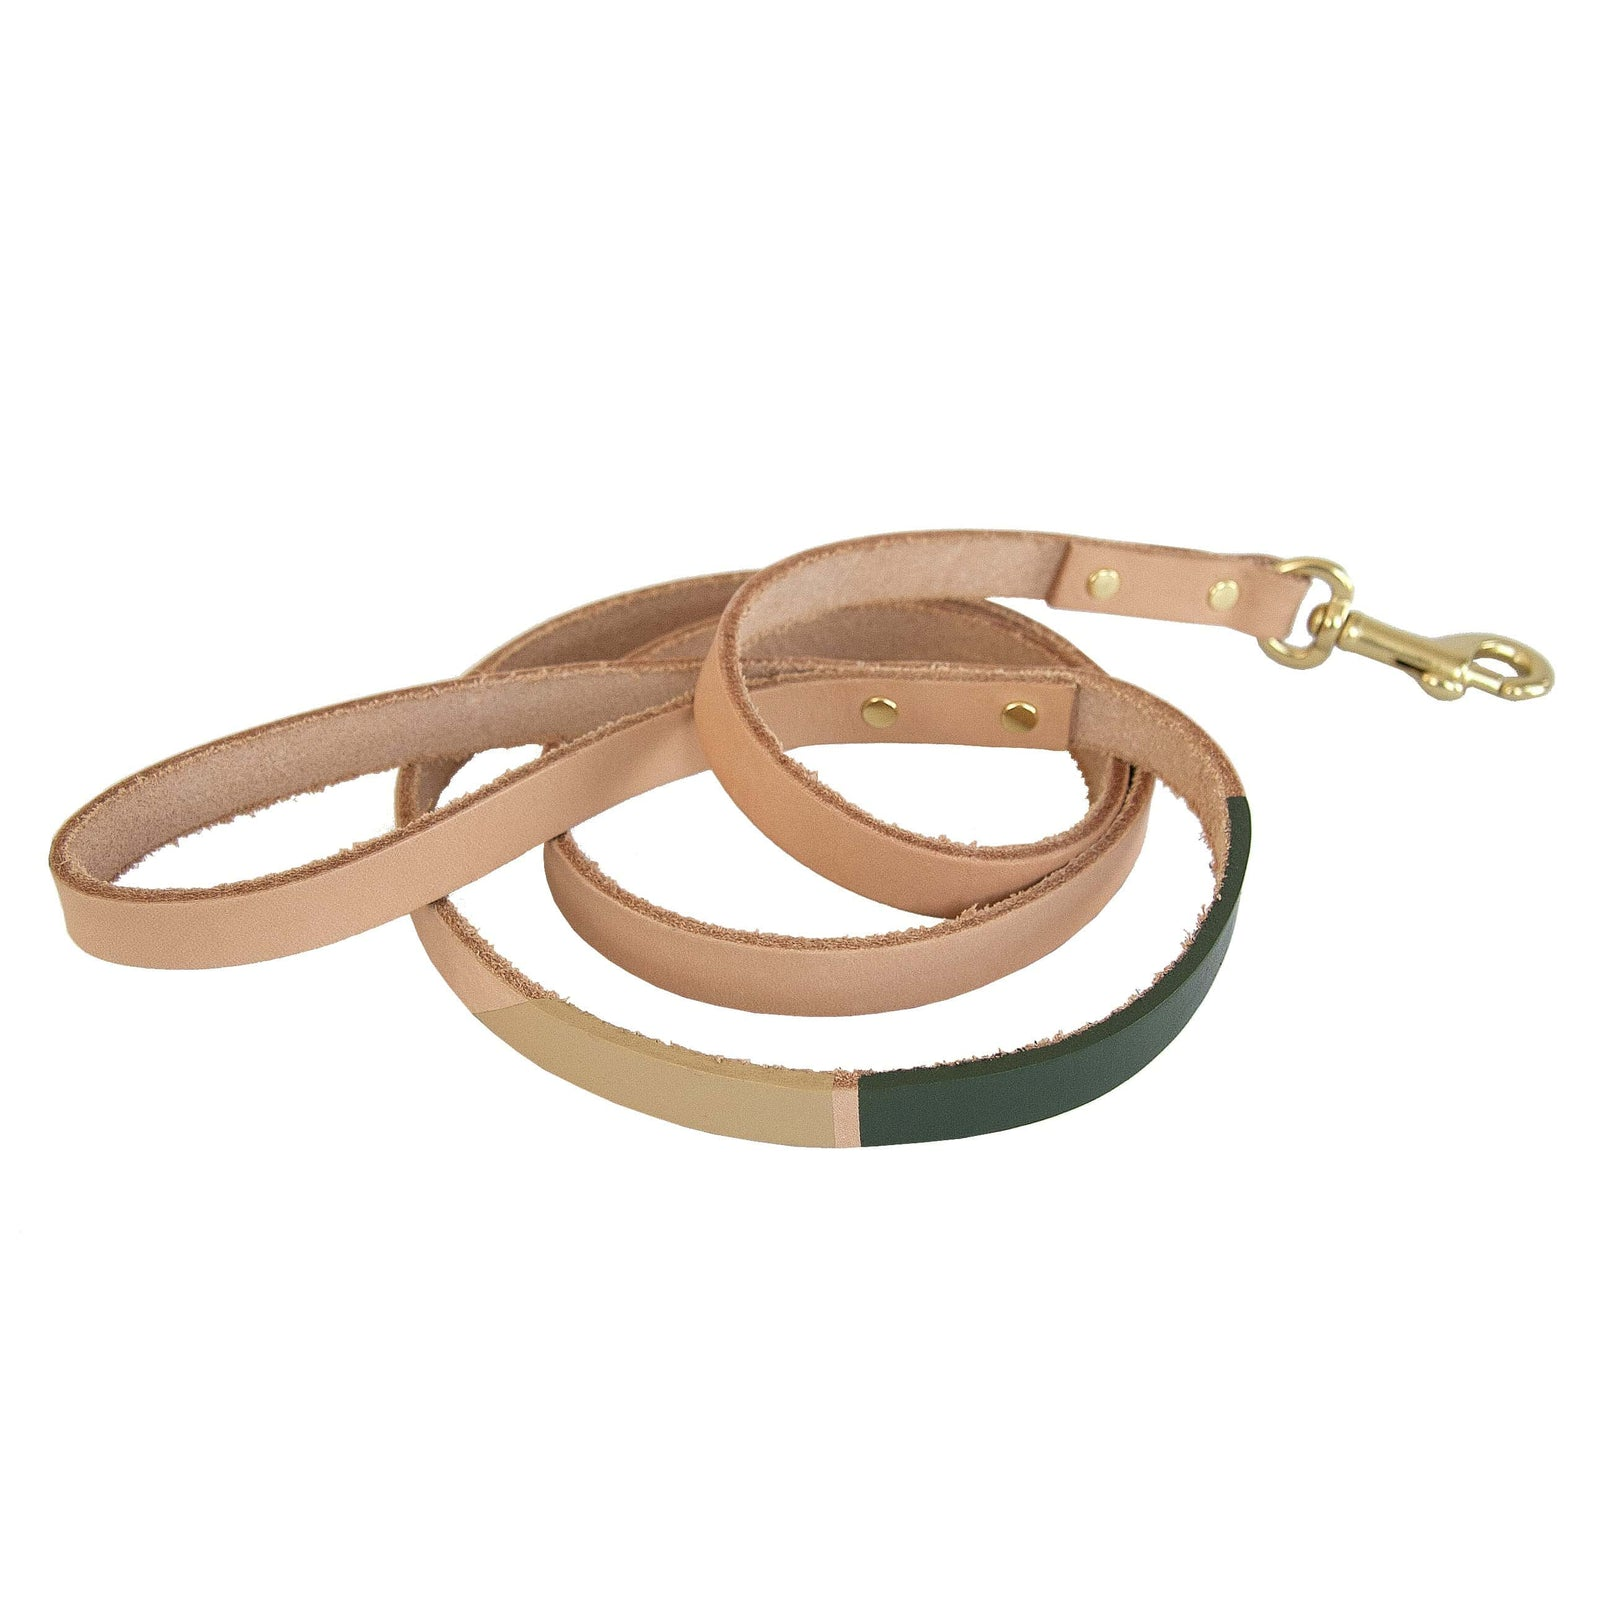 Son of a Sailor Pet Eastwood Leash - Small, Olive & Sand